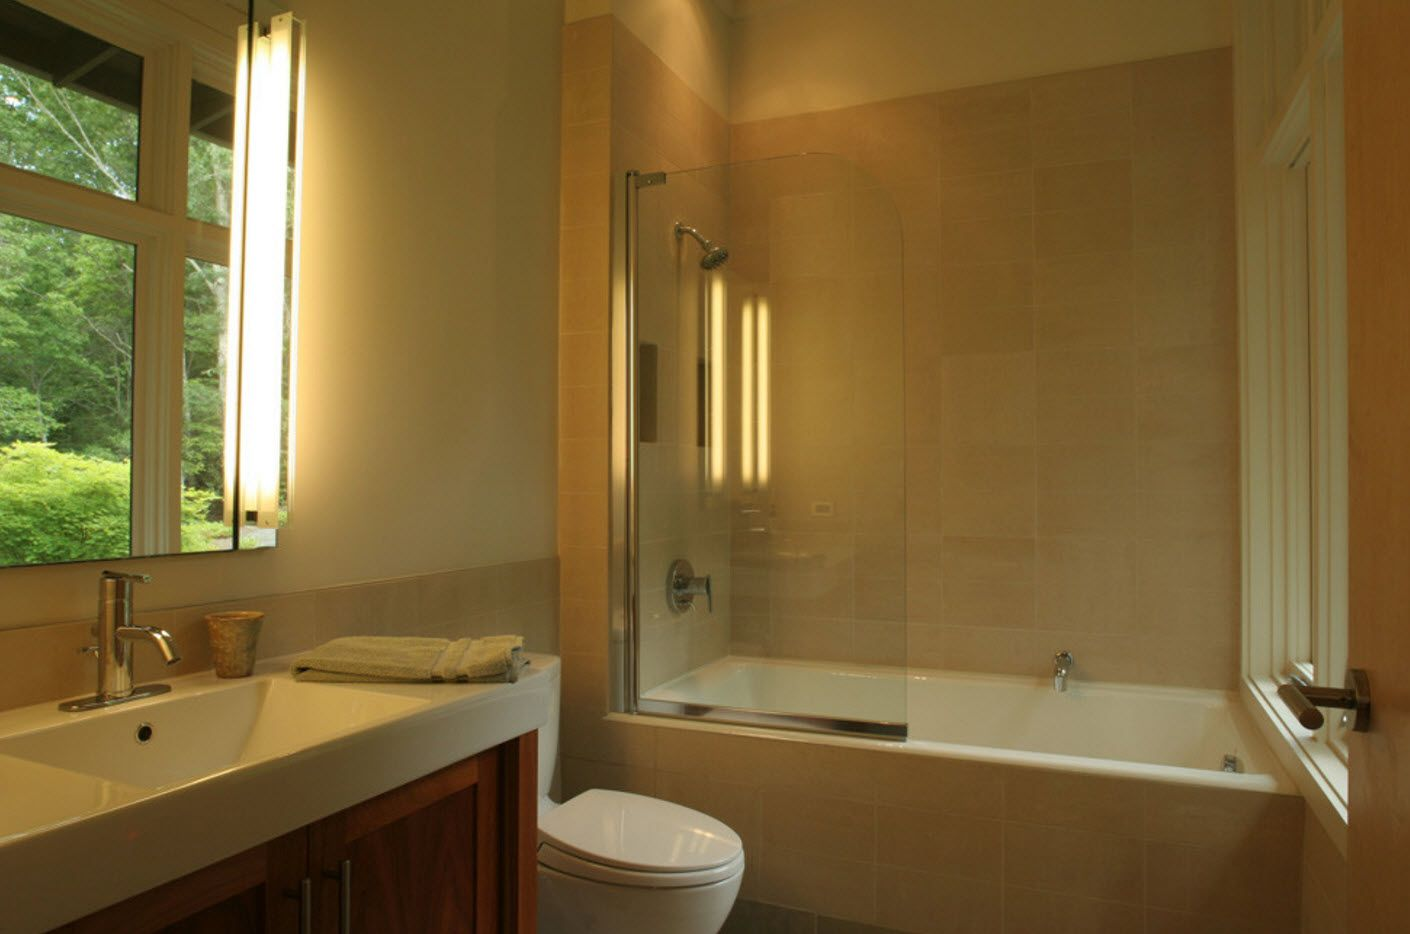 Bathroom design trends decoration ideas 2017 small for Current trends in bathroom remodeling